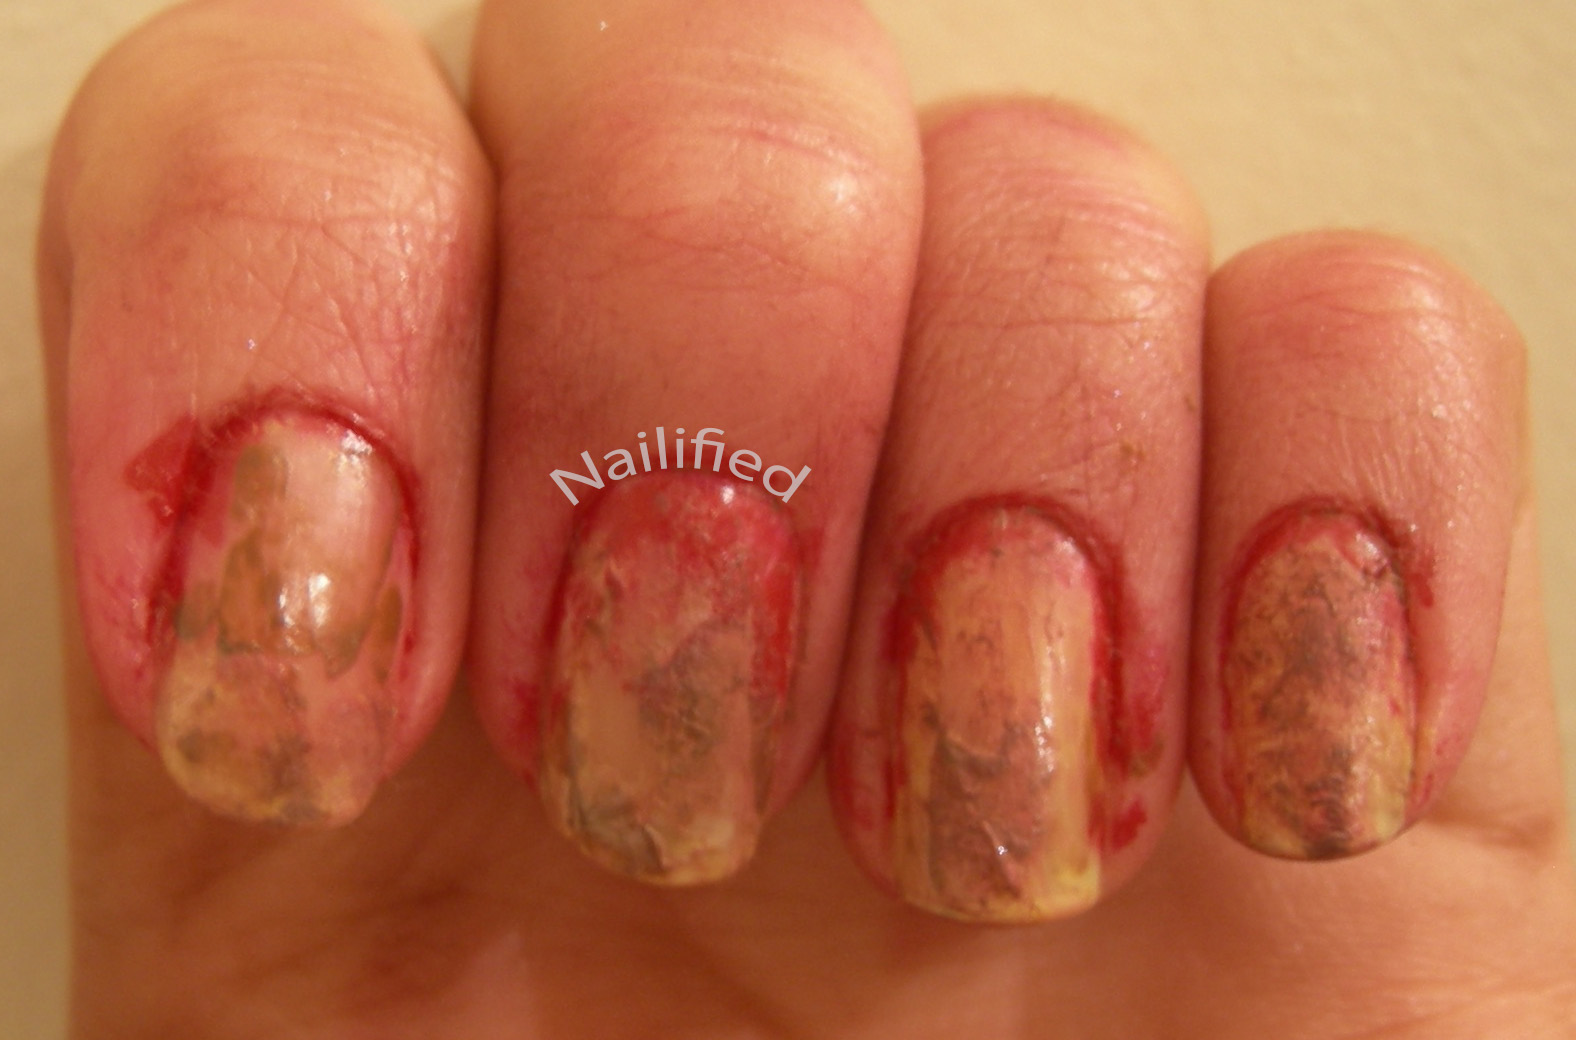 Nailified: TIHC Oct 15: Zombies